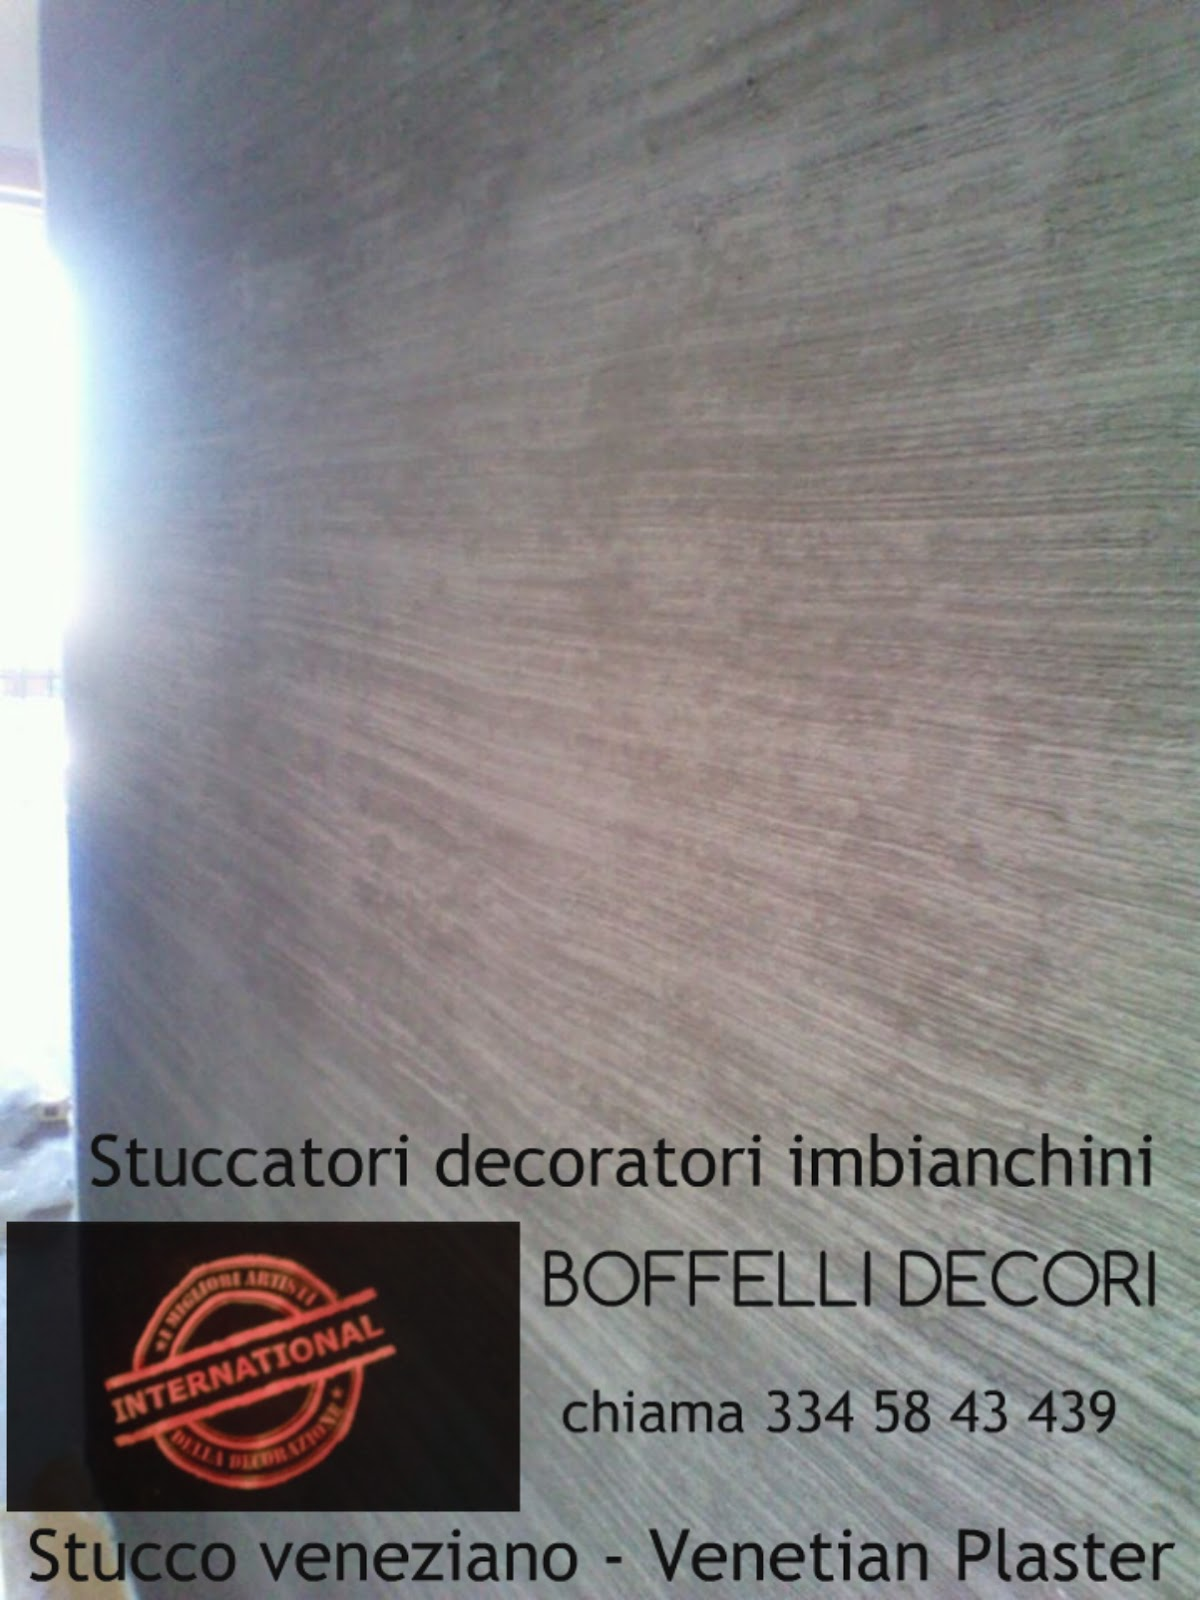 Boffelli decori coloriture decorative e stucco veneziano for Istinto pietra spaccata prezzo